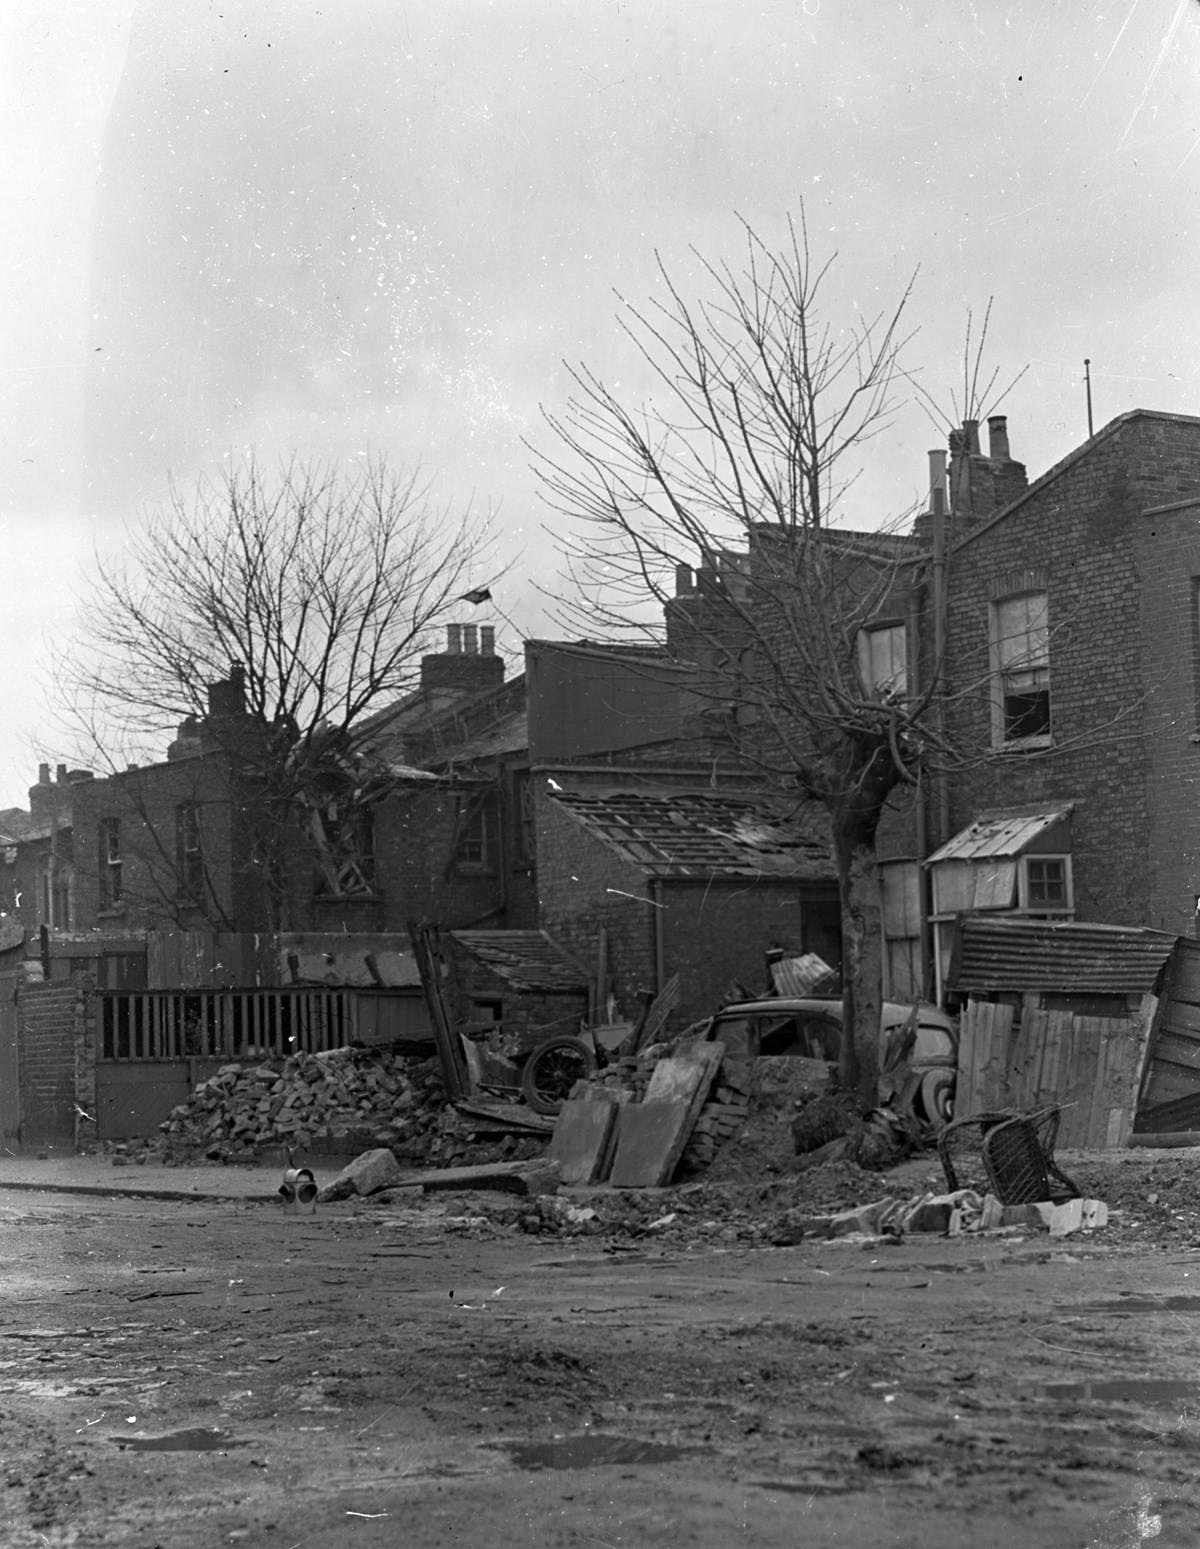 A black and white photo of houses on Peckham Hill Road. The road has suffered bomb damage from the Blitz. There is a damaged car, rubble and a chair lying on the side of the road.